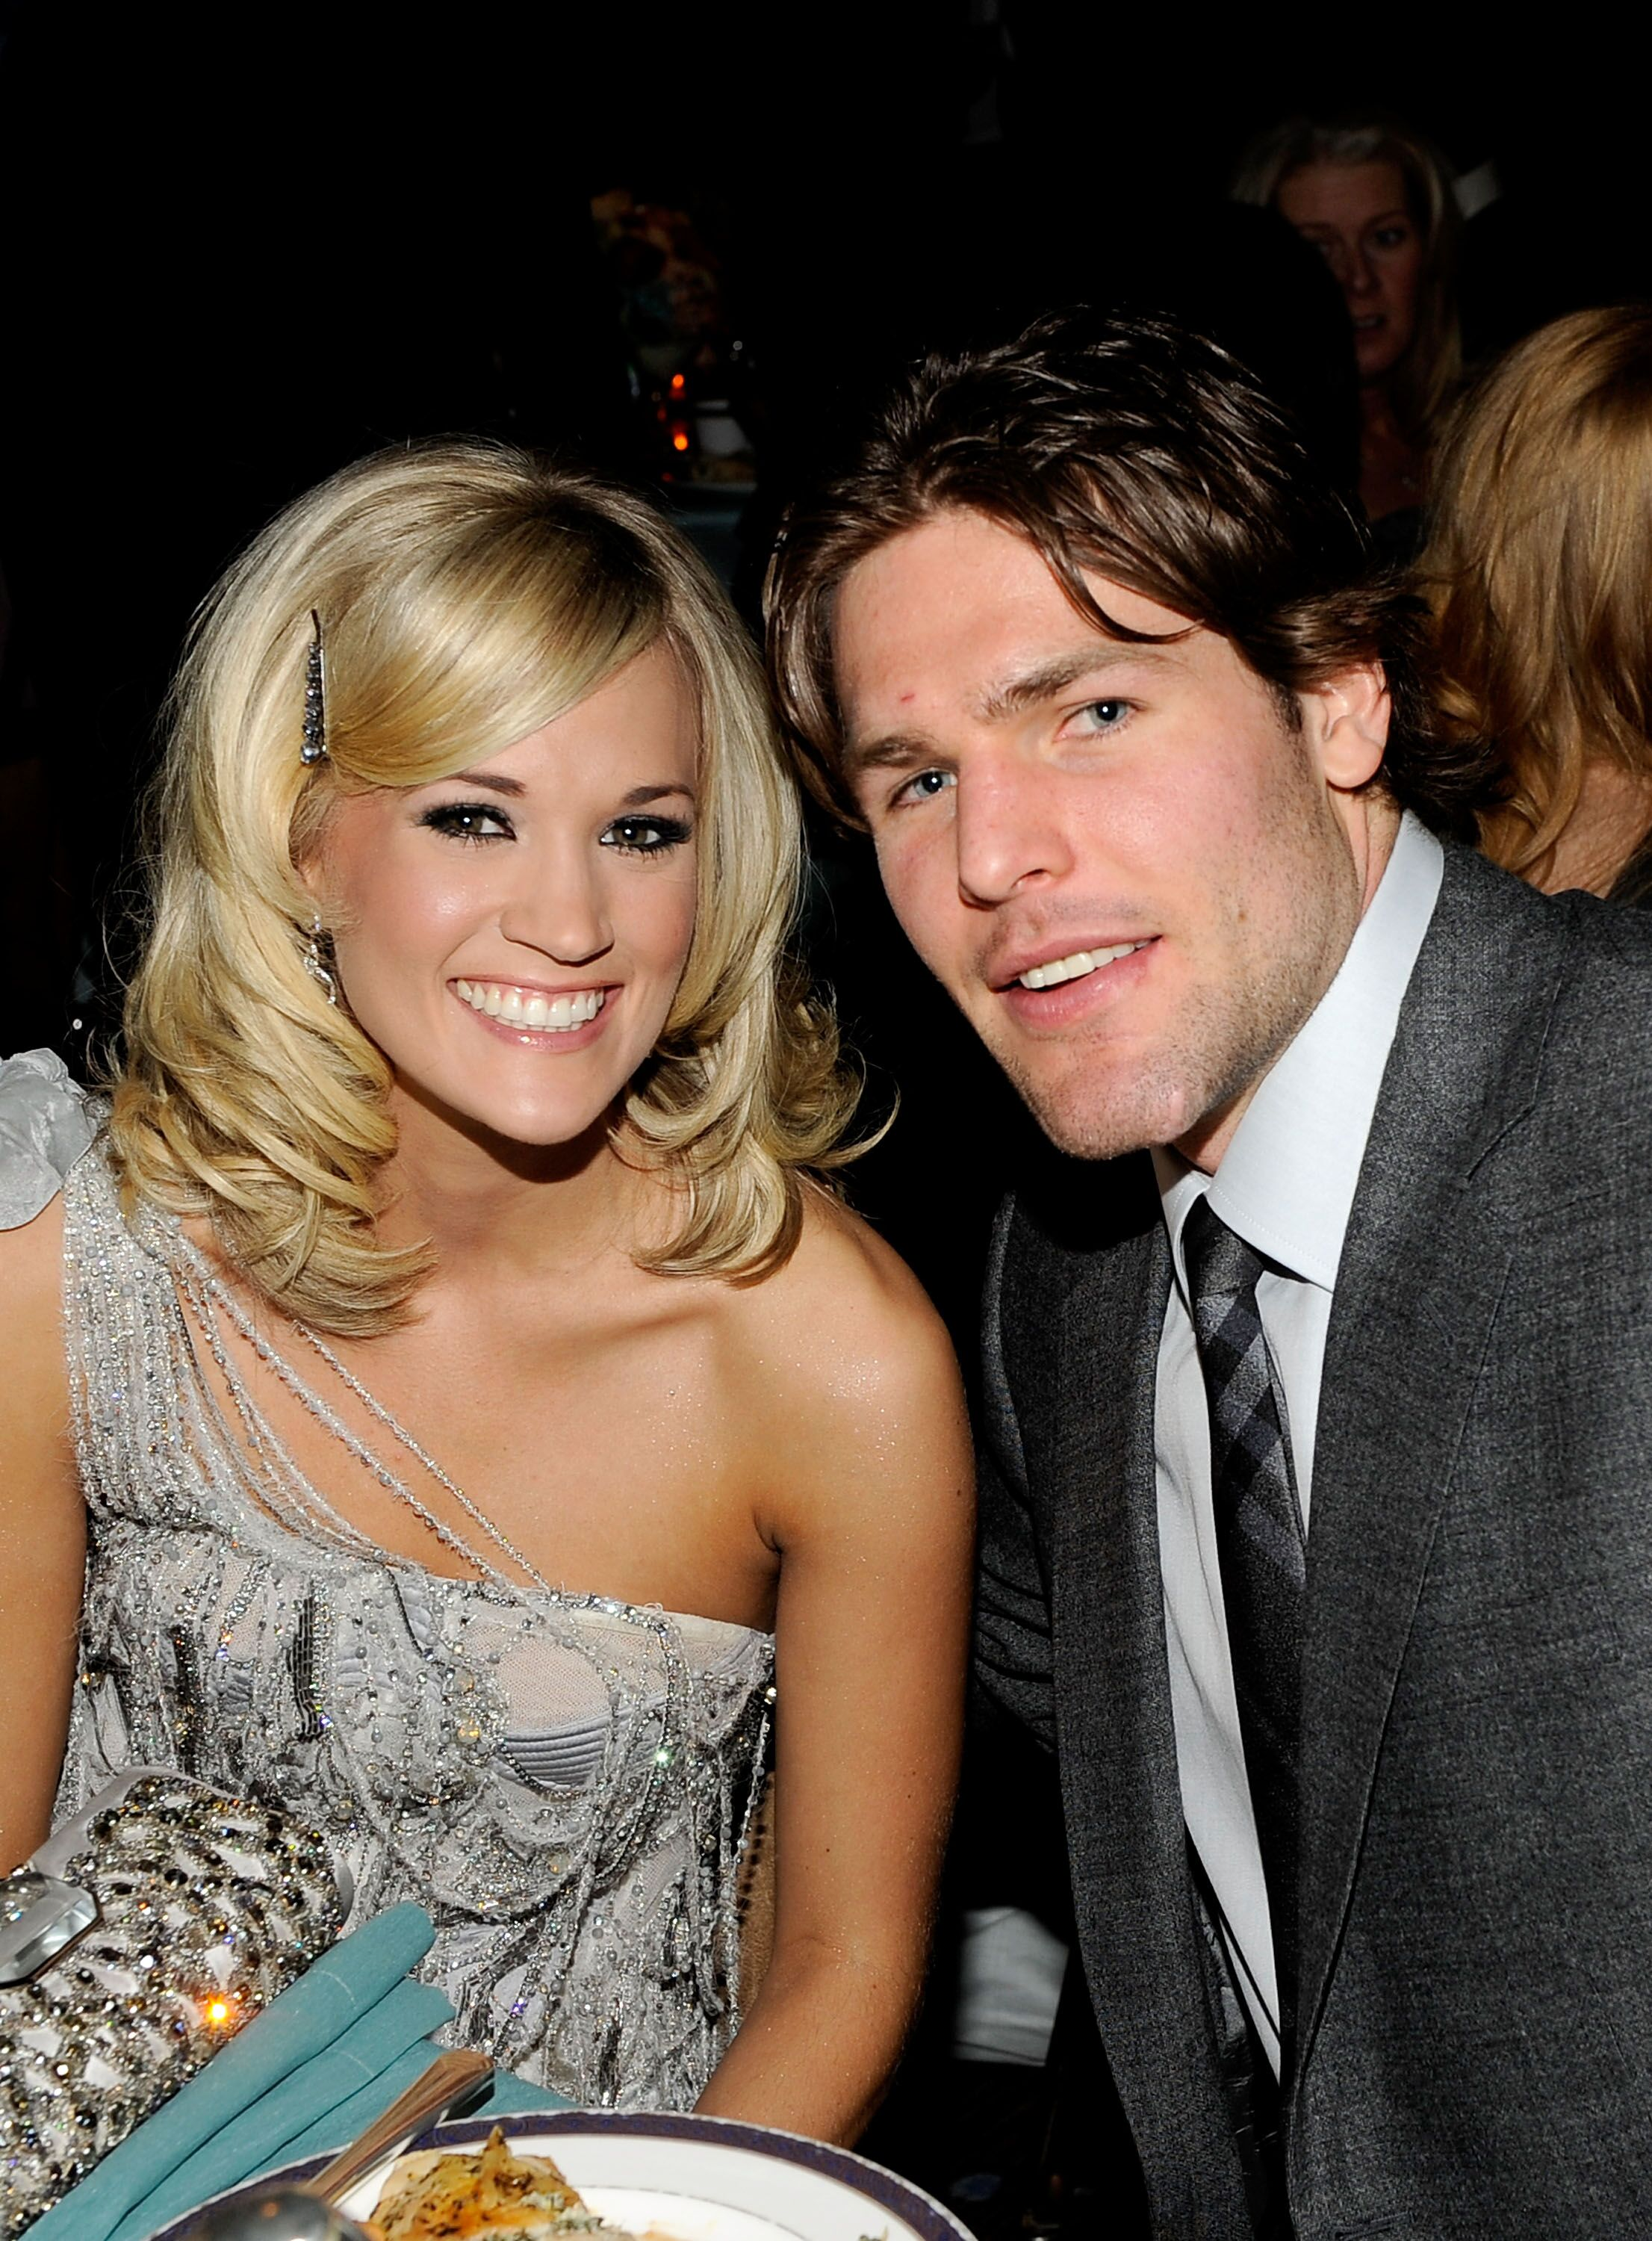 Singer Carrie Underwood and husband Mike Fisher at the 52nd Annual GRAMMY Awards | Source: Getty Images